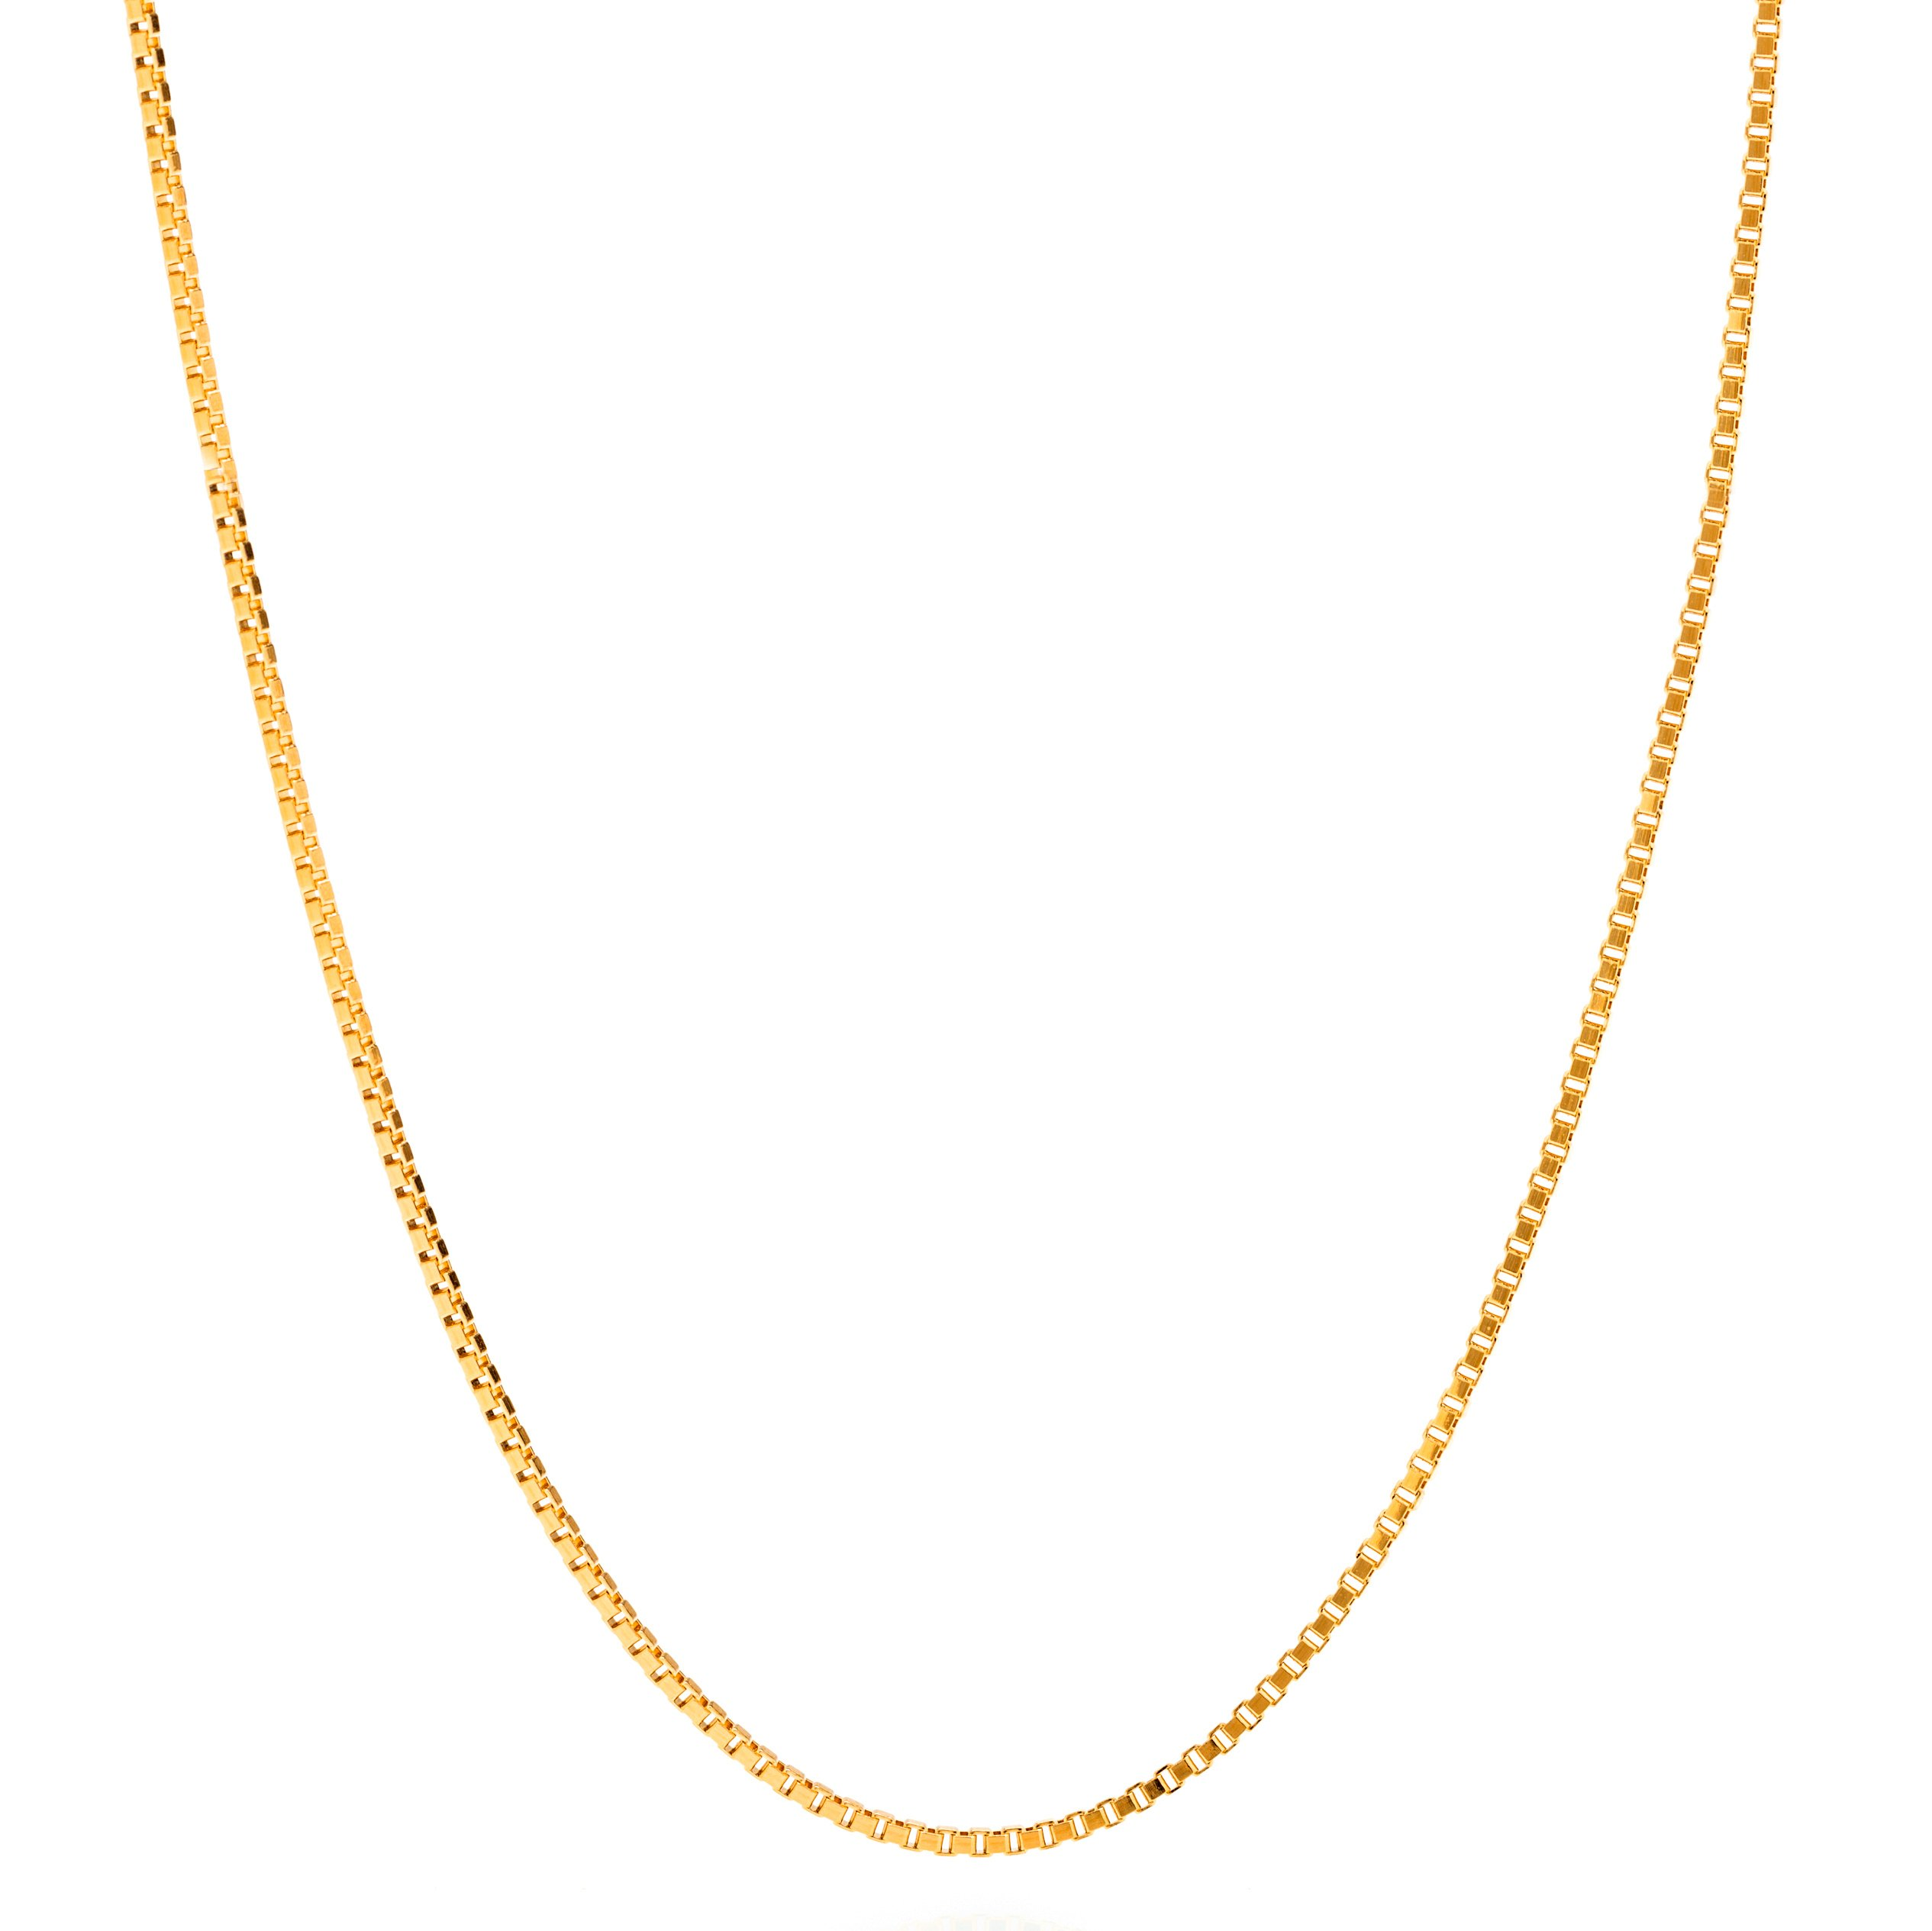 Lifetime Jewelry Box Chain 1.4 mm Pendant Necklace 24K Gold Plated - Made Thin For Charms - Comes in Pouch For Easy Gift Giving - Long - 30 Inches